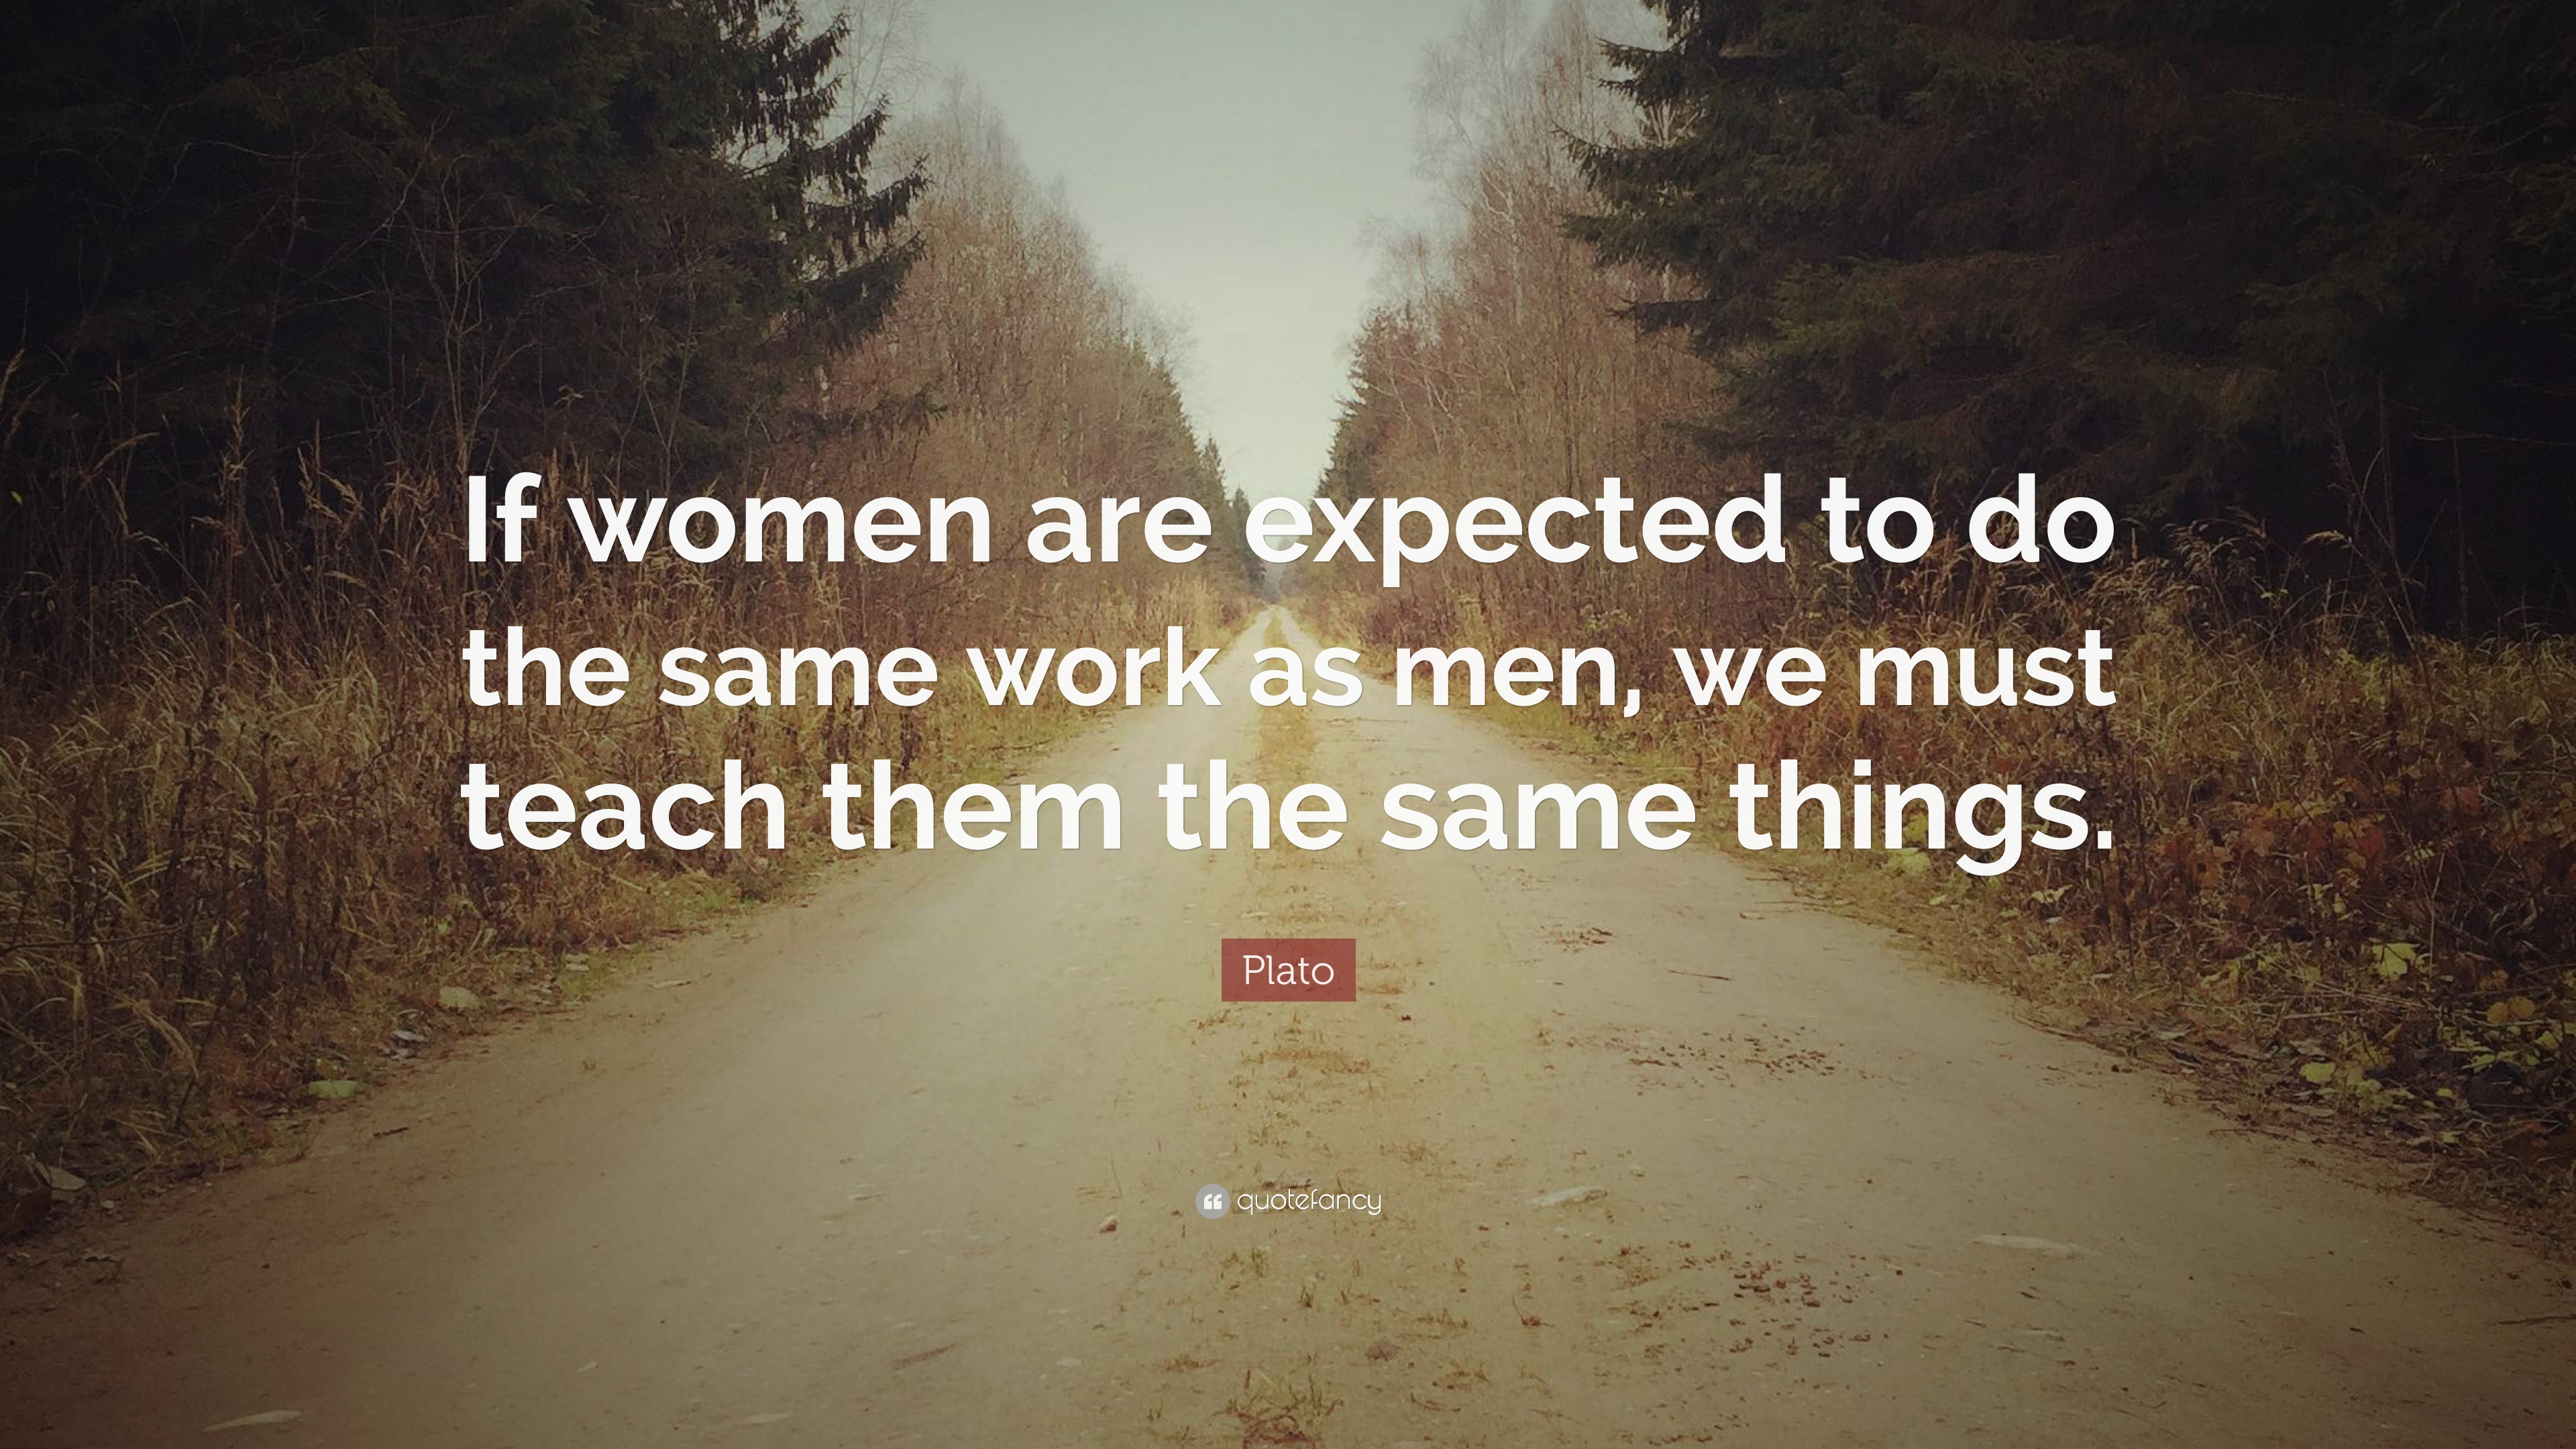 Women are expected to